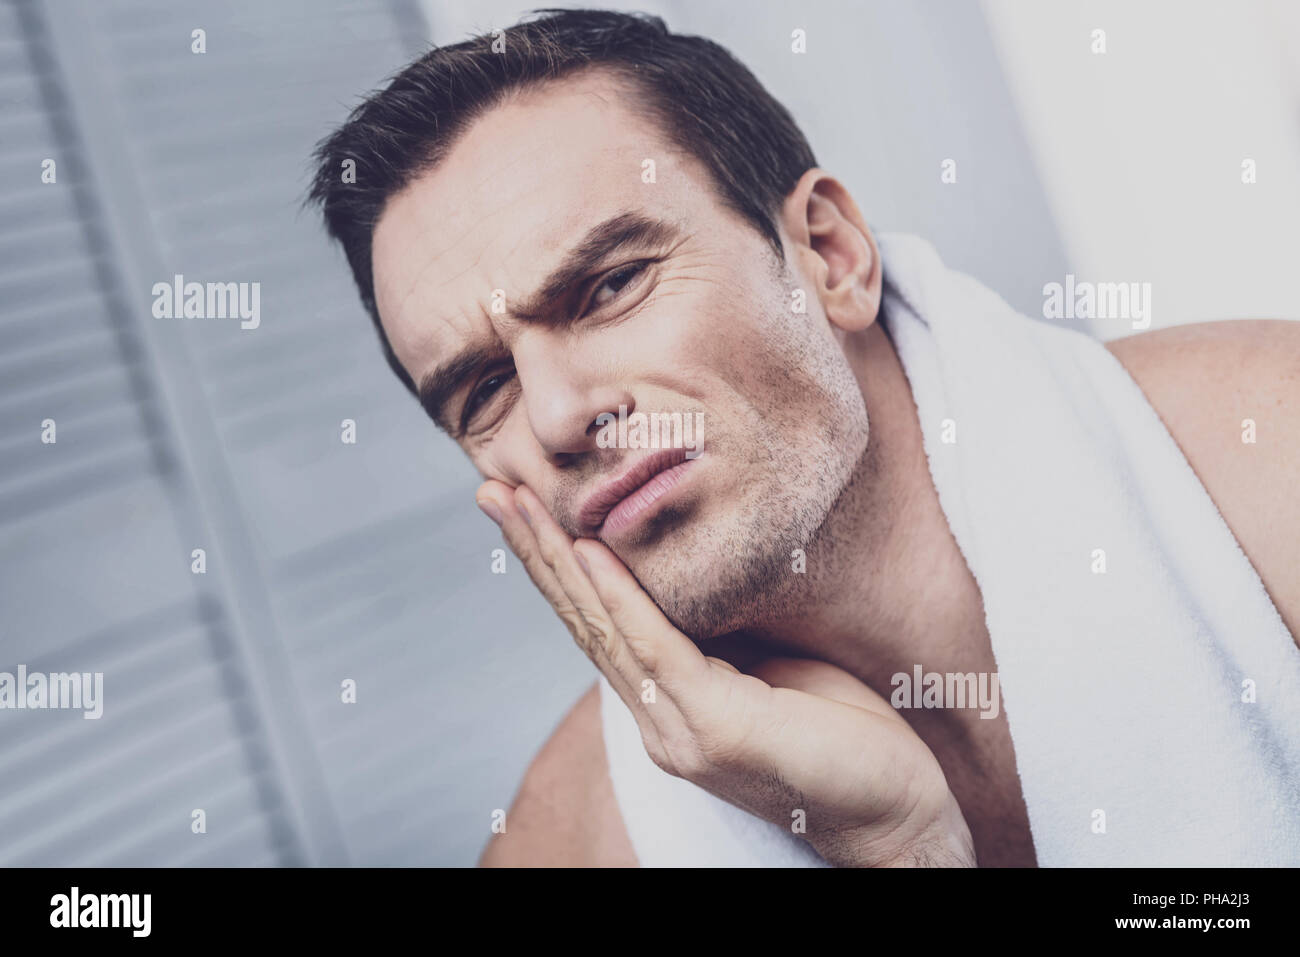 Diseased man suffering from tooth pain - Stock Image